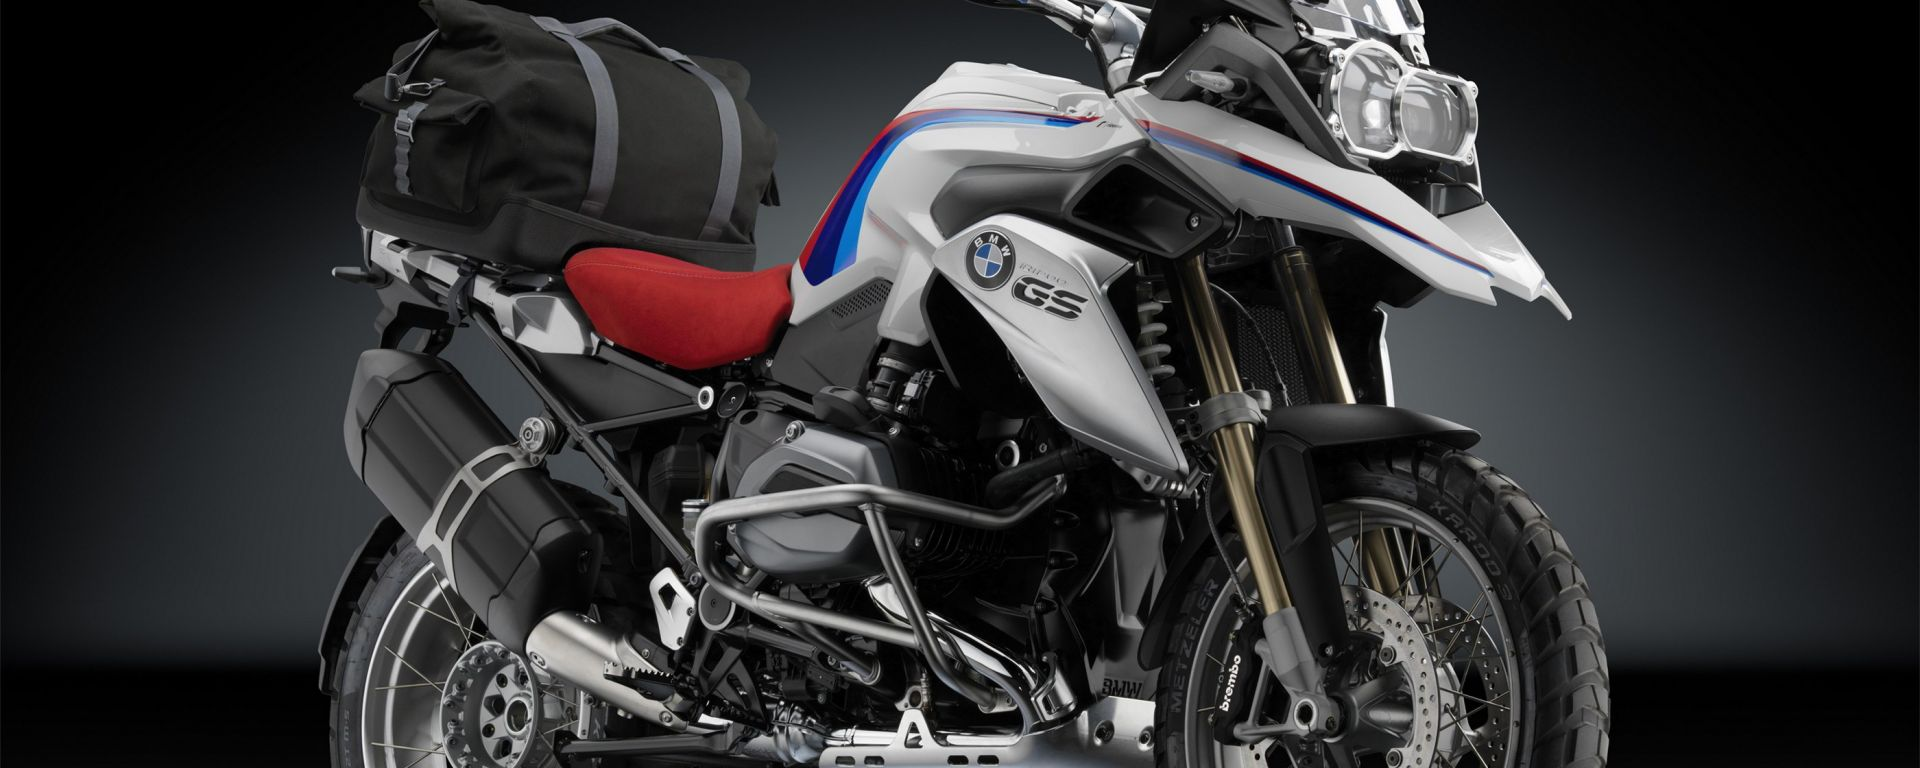 Rizoma BMW R 1200 GS Accessory Line